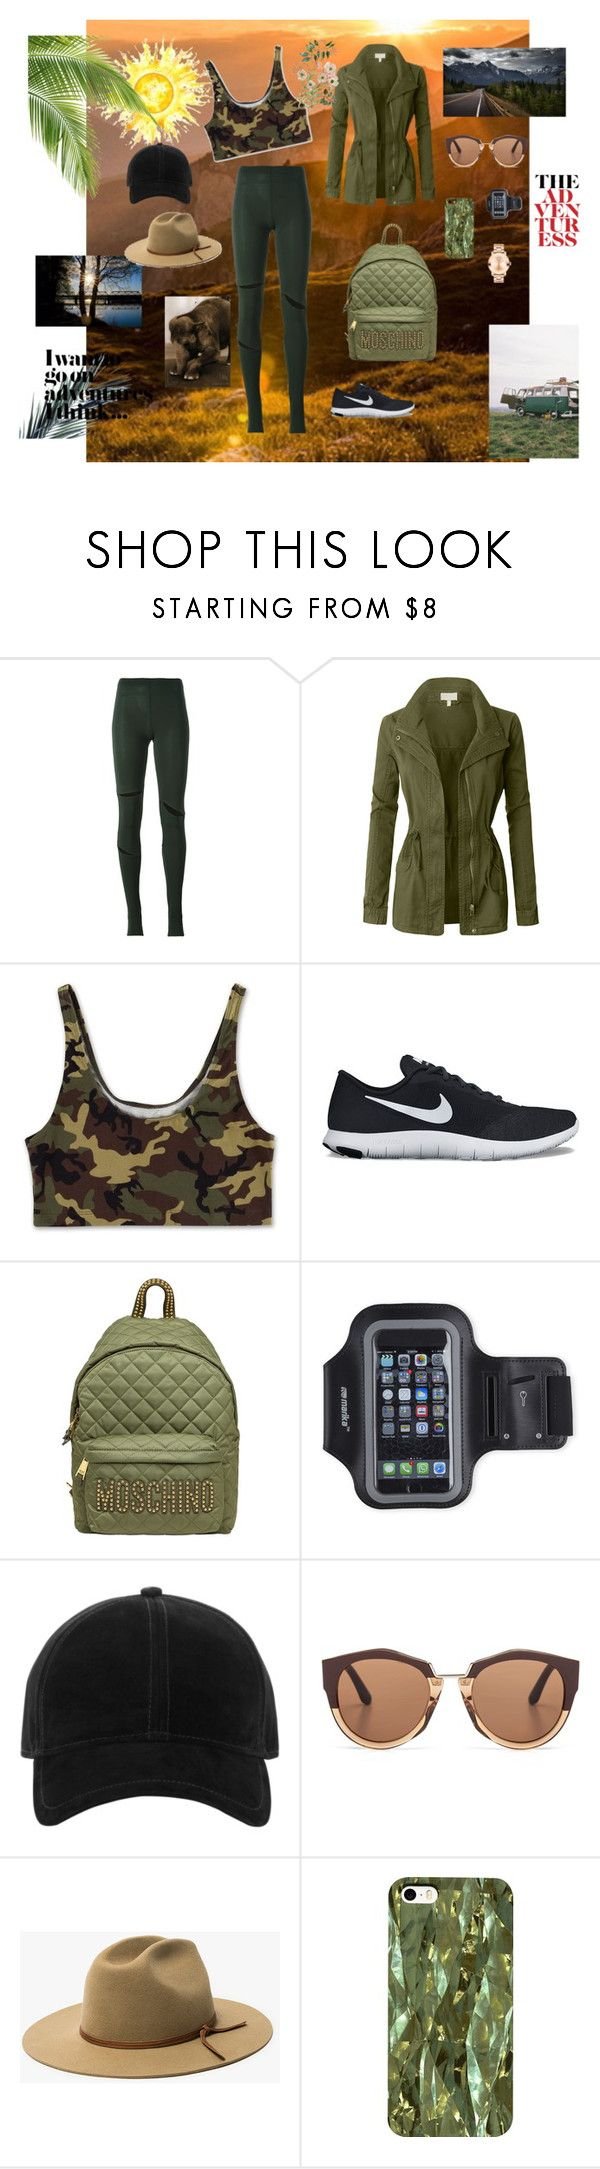 """adventure day"" by pixiepinkk ❤ liked on Polyvore featuring MM6 Maison Margiela, LE3NO, NIKE, Moschino, Marika, rag & bone, Marni, Movado and Vanity Fair"